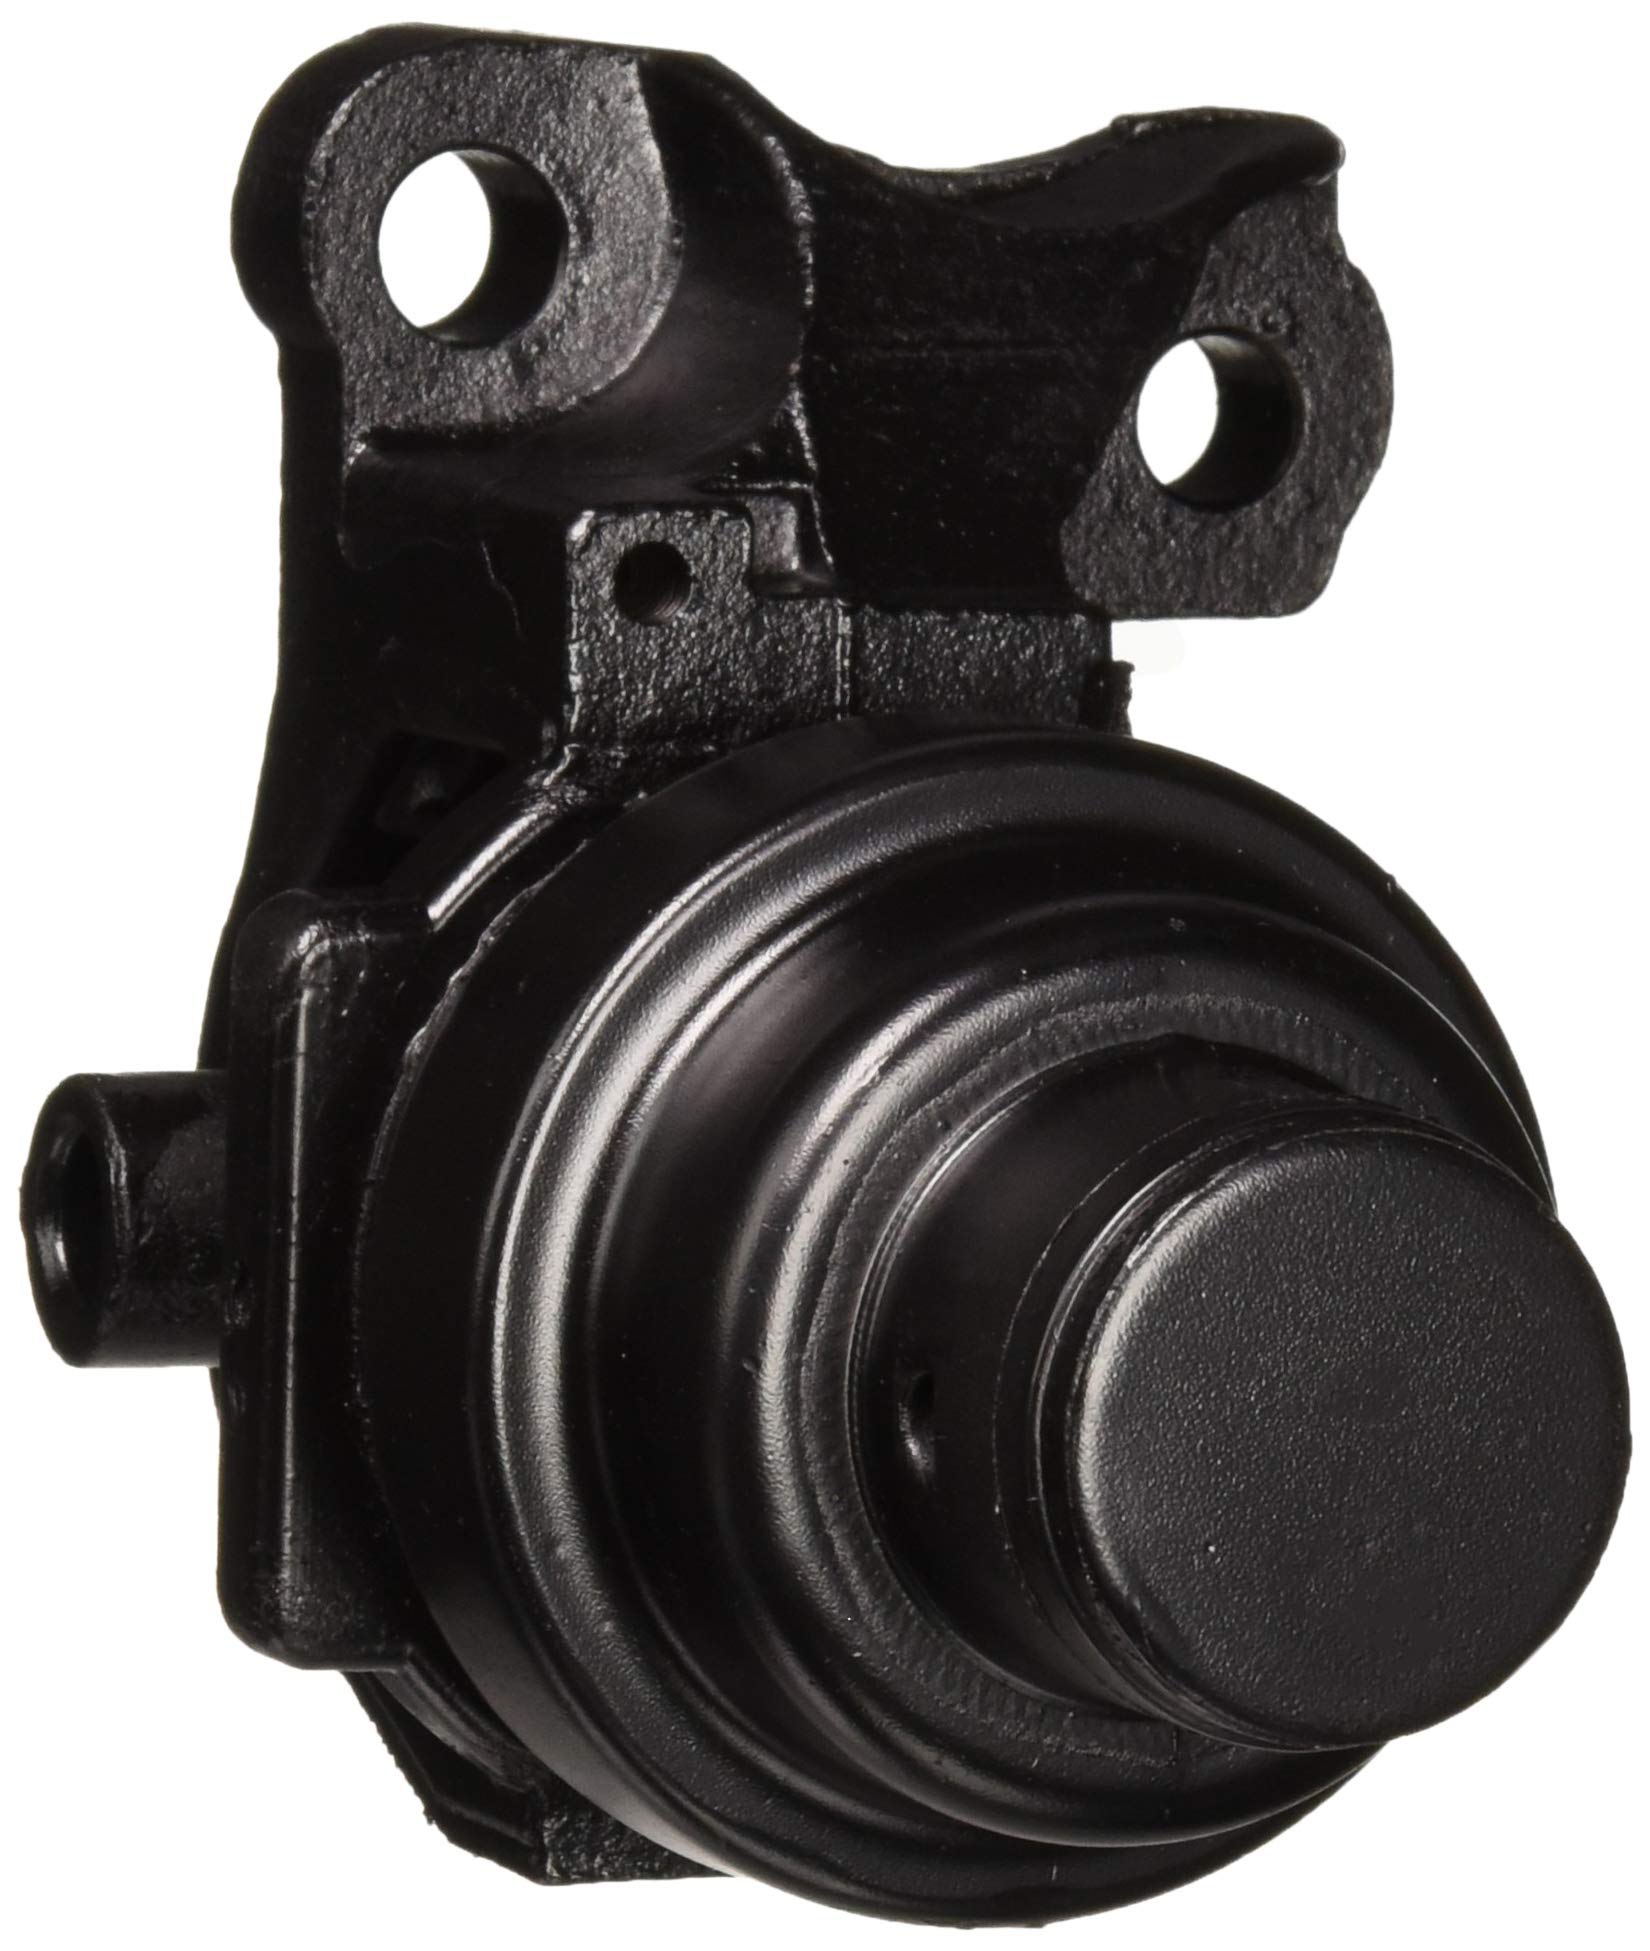 MotorKing 6549 Left Engine Mount (Fits Honda Accord, Odyssey, Acura CL, Isuzu Oasis) (Non-Carb Compliant)